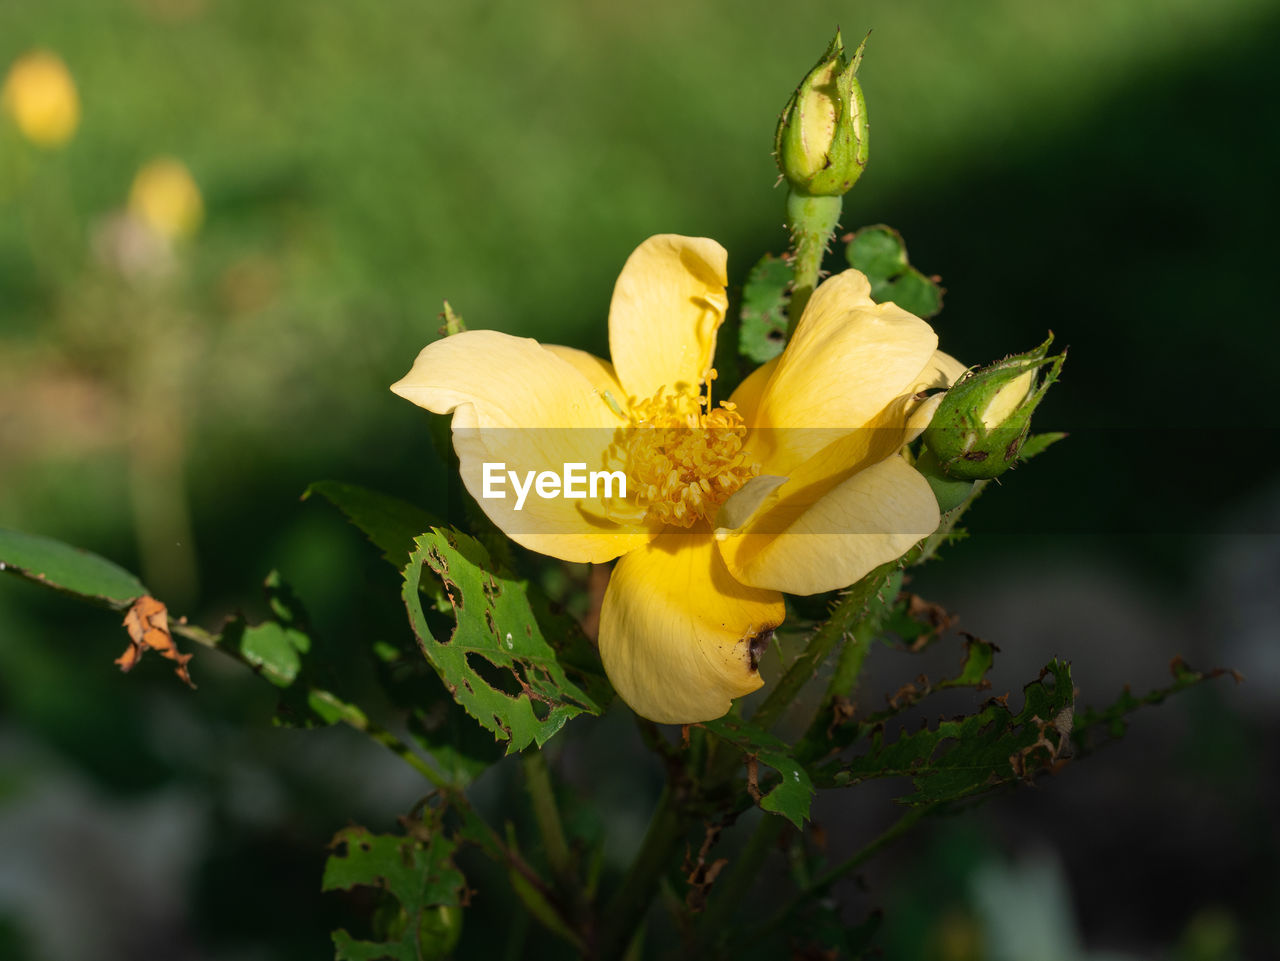 flower, flowering plant, plant, beauty in nature, fragility, growth, vulnerability, freshness, yellow, petal, inflorescence, flower head, close-up, nature, no people, pollen, focus on foreground, selective focus, day, bud, outdoors